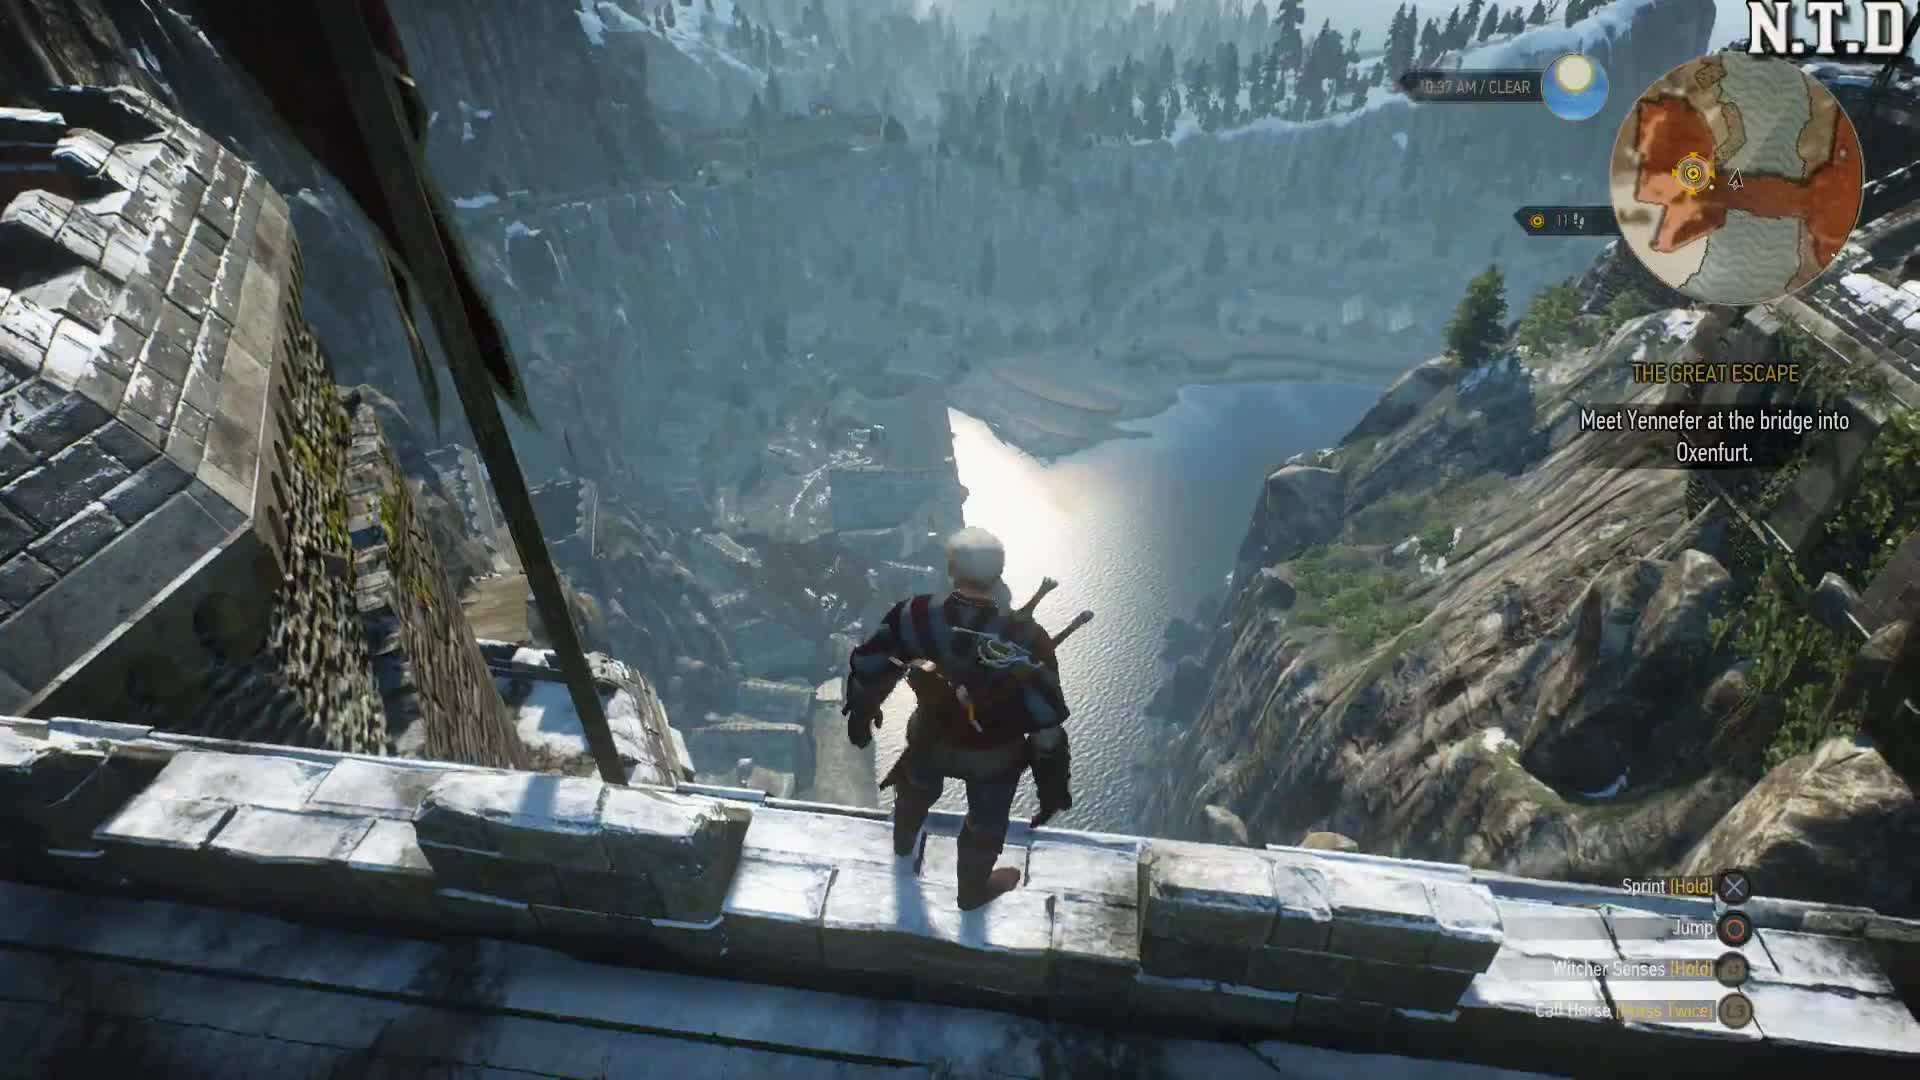 Action Role-playing Game (Video Game Genre), Dive, Gameplay, Gaming, Geralt, Geralt Of Rivia (Fictional Character), Graphics, Height, High, Incredible, Insane, Nathlaaar, The Witcher 3: Wild Hunt (Video Game), Witcher, The Witcher 3: Geralt dives from insane height! GIFs